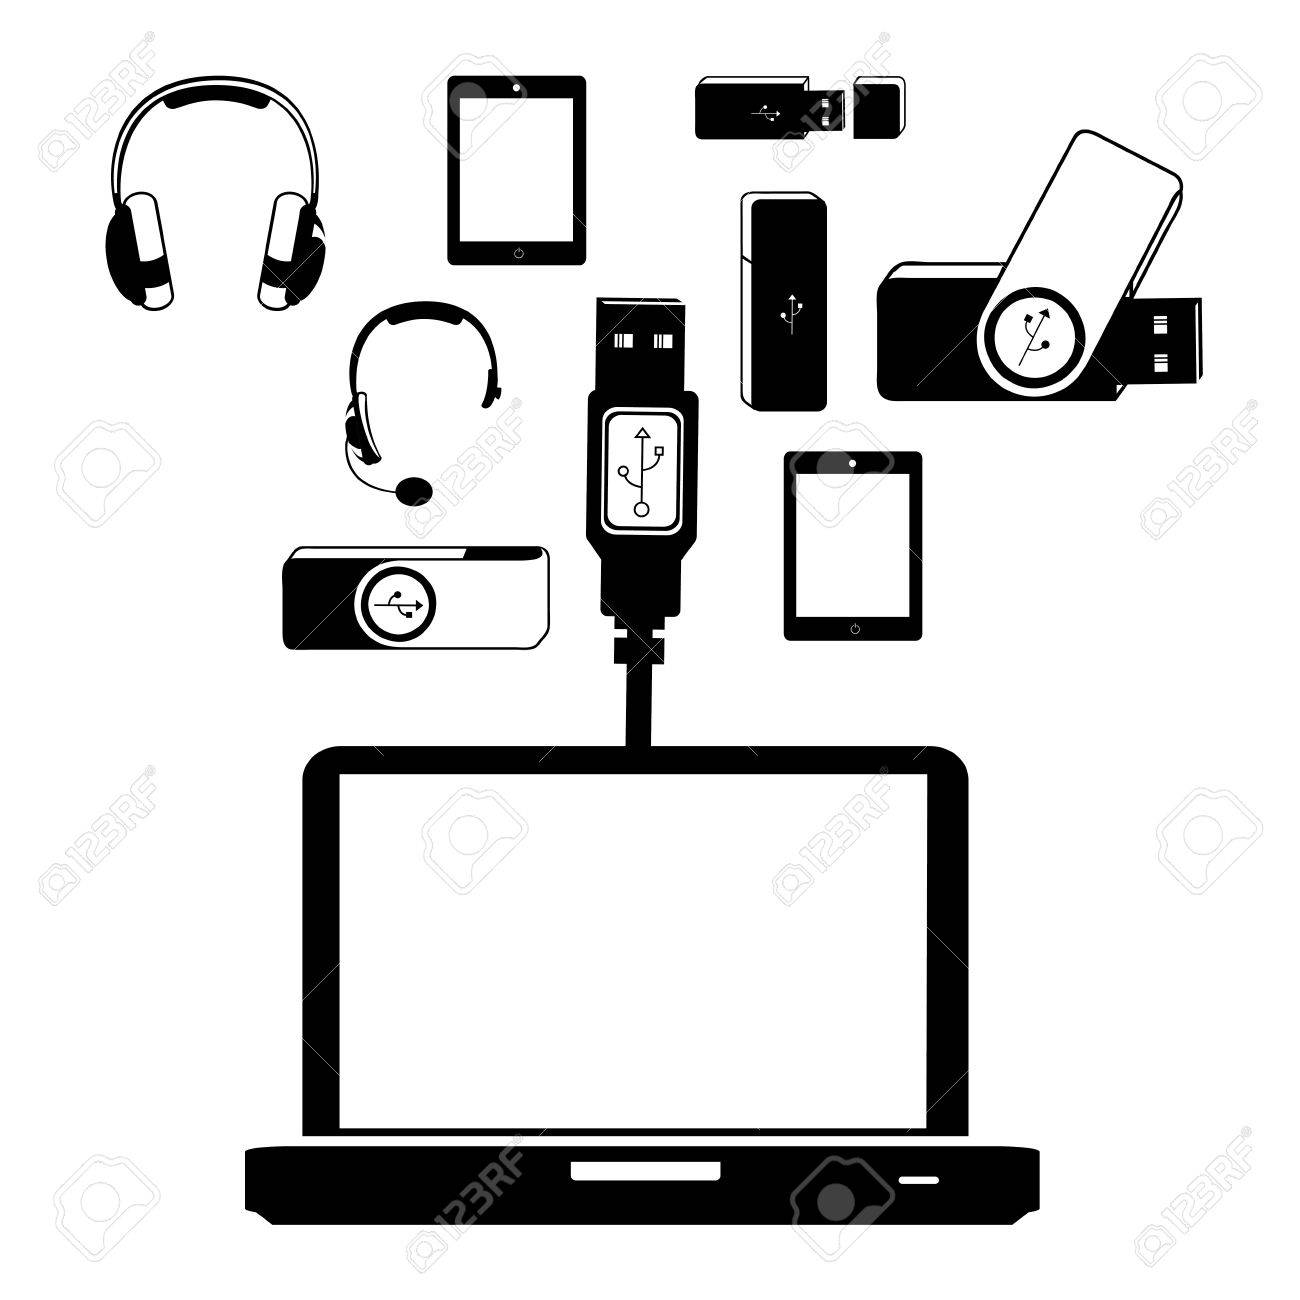 usb connection over white background vector illustration Stock Vector - 21295684